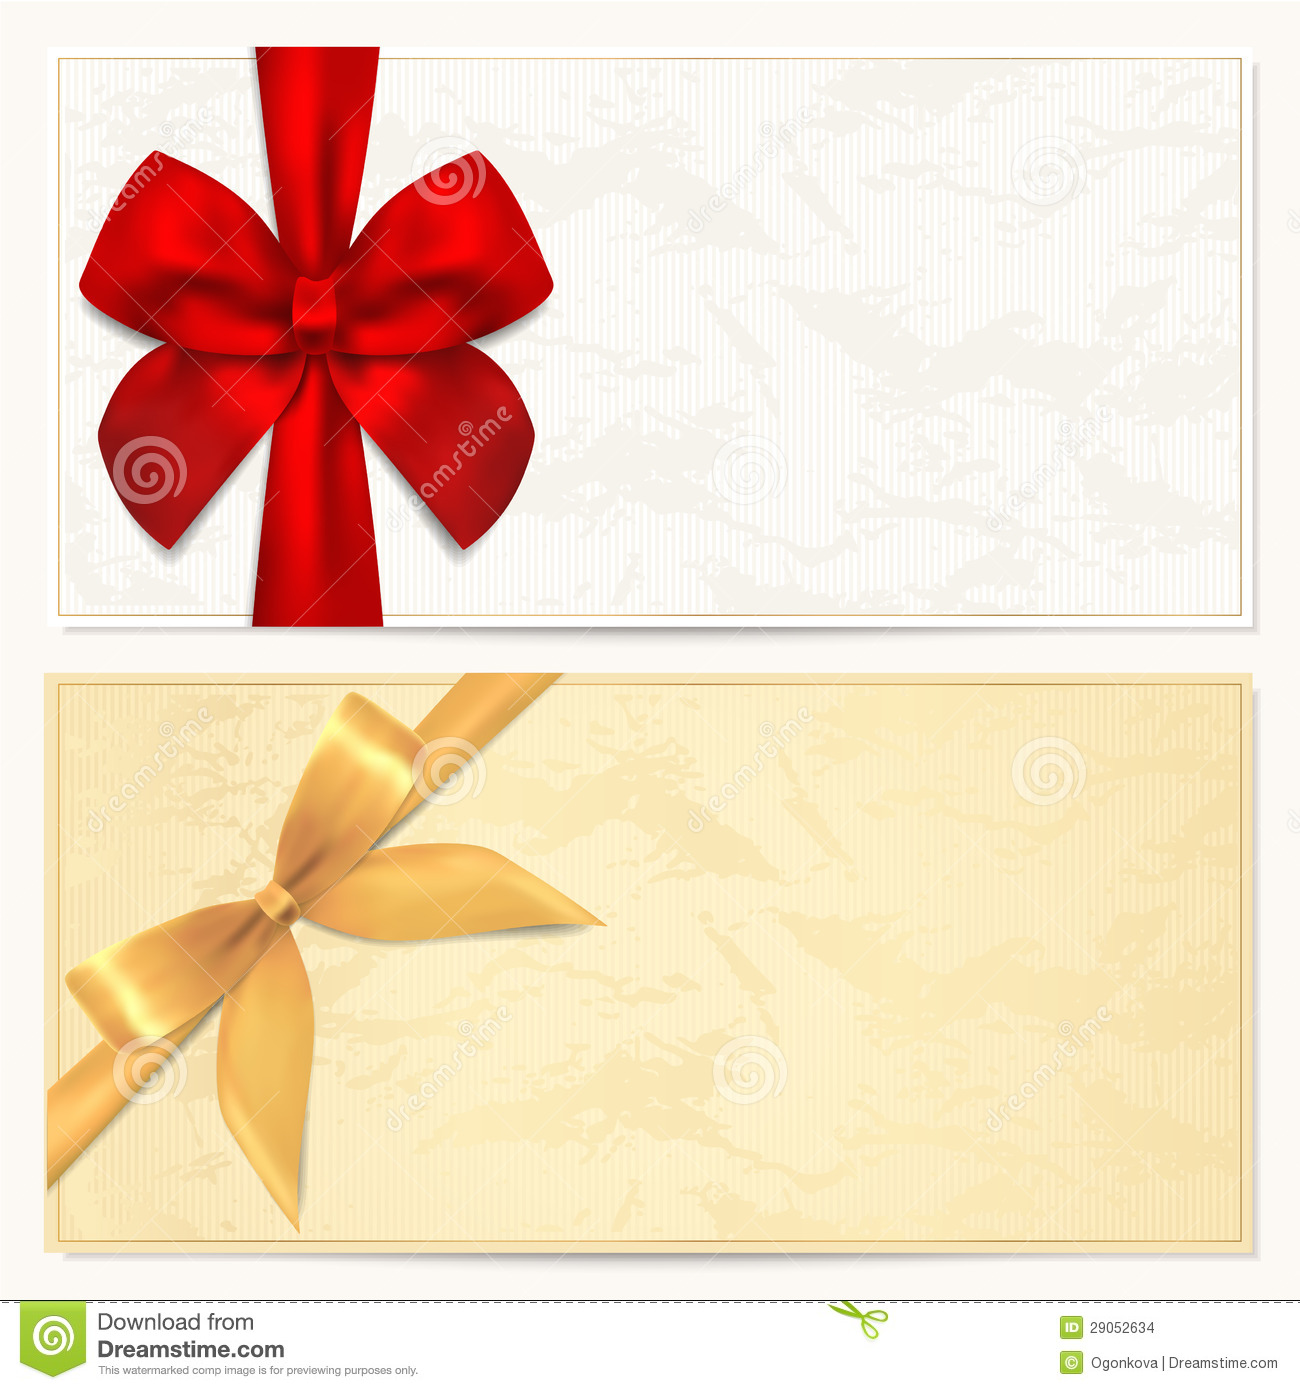 voucher gift certificate template gold pattern royalty gift voucher coupon template red bow ribbons stock images